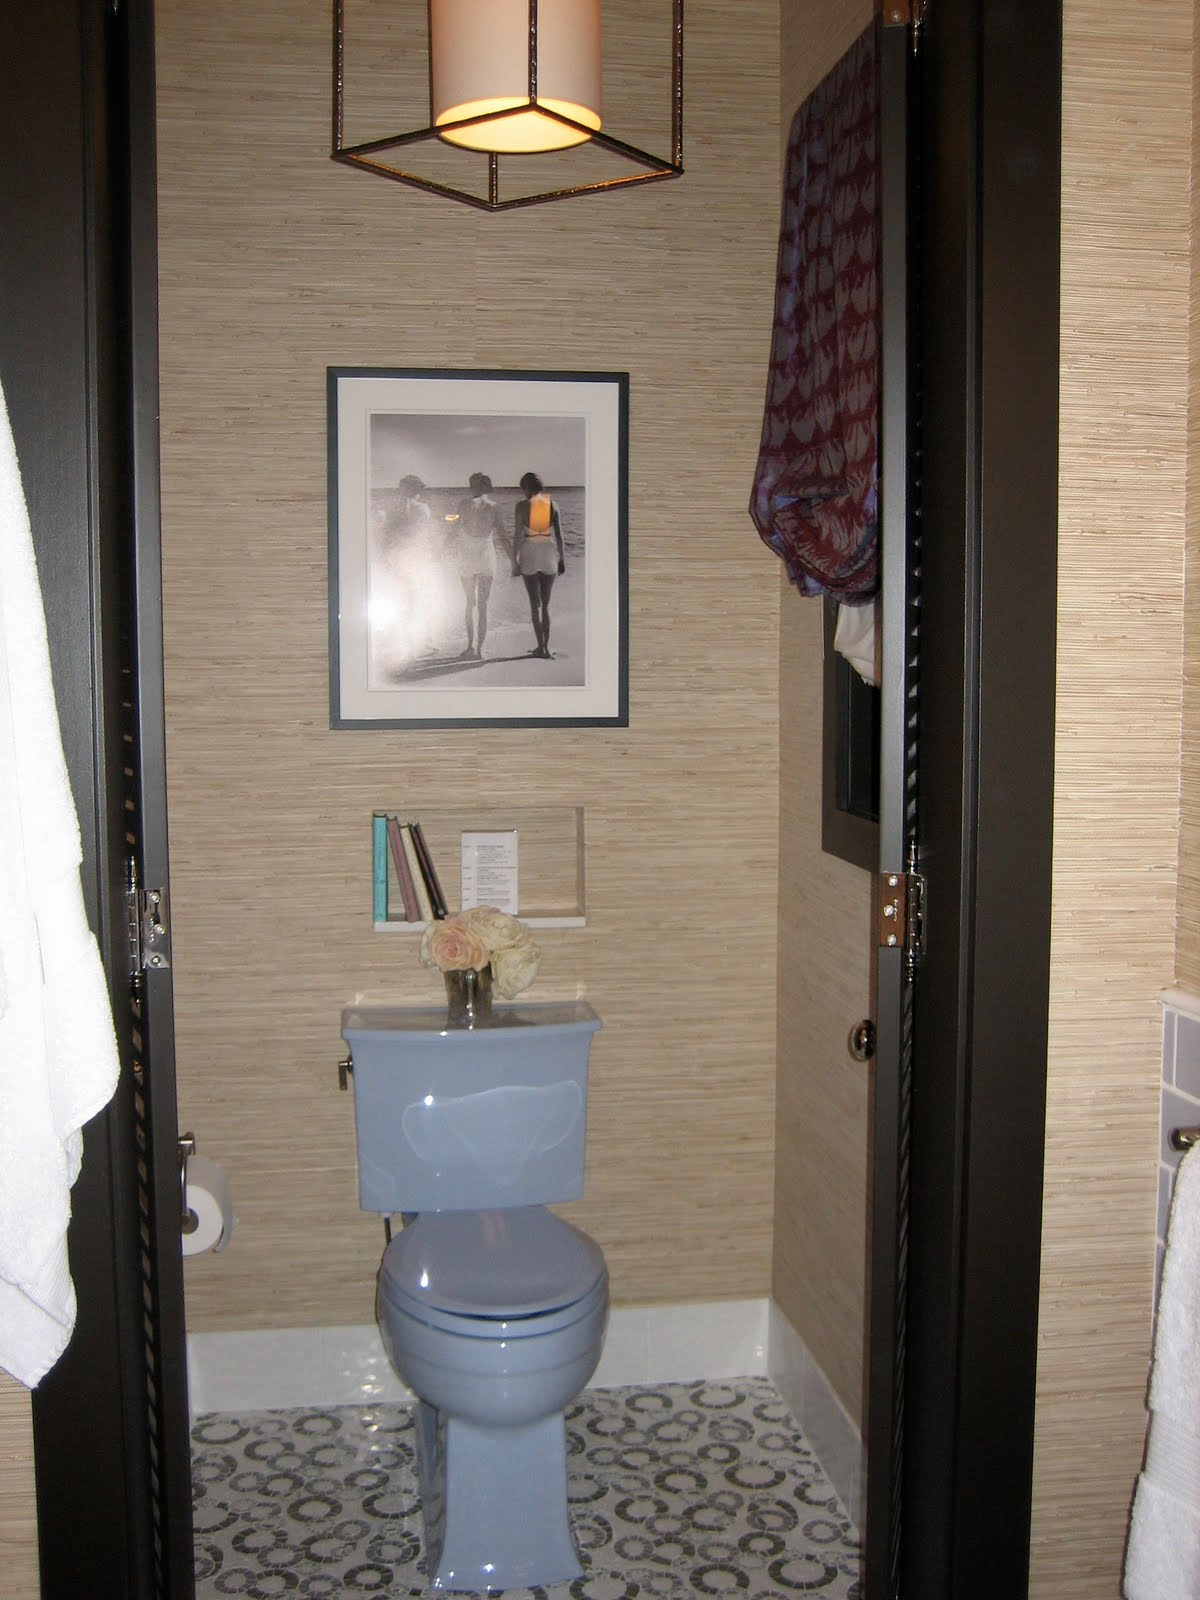 Toilet design toilet design room design ideas room for Toilet room ideas